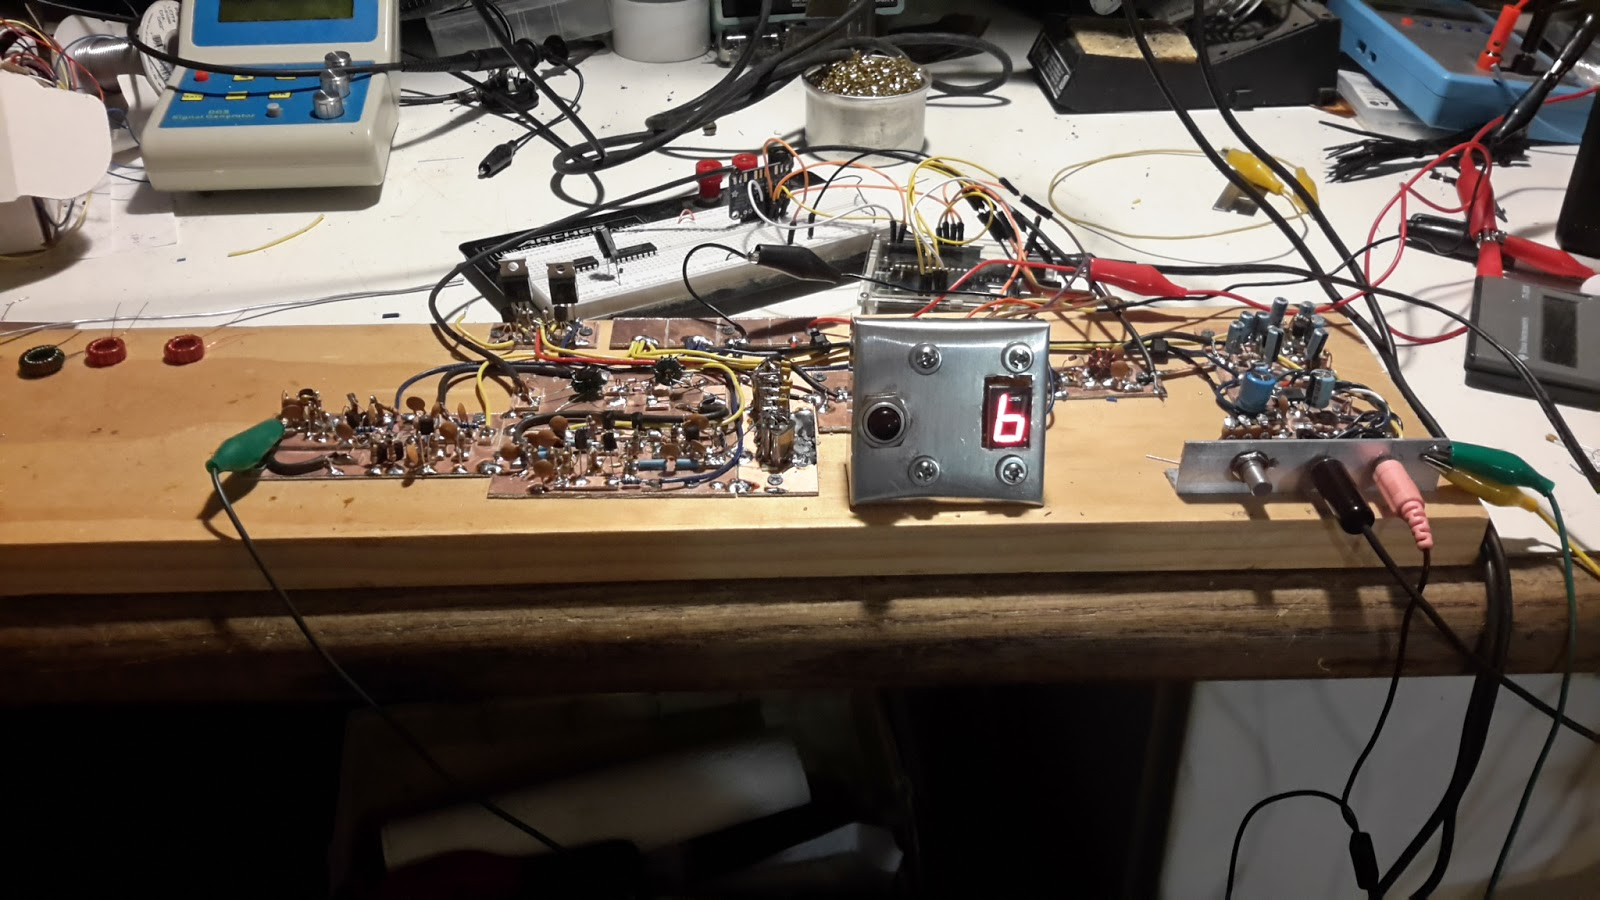 Steves Eclectic Radio Blog 2016 Lm380 Single National Forms Simple Amplifier With Tone And So Heres The Planker In Its Current State Af If Mixer Bfo Low Level Transmit Stages Are Operational Next Step Is To Complete Pa Band Pass